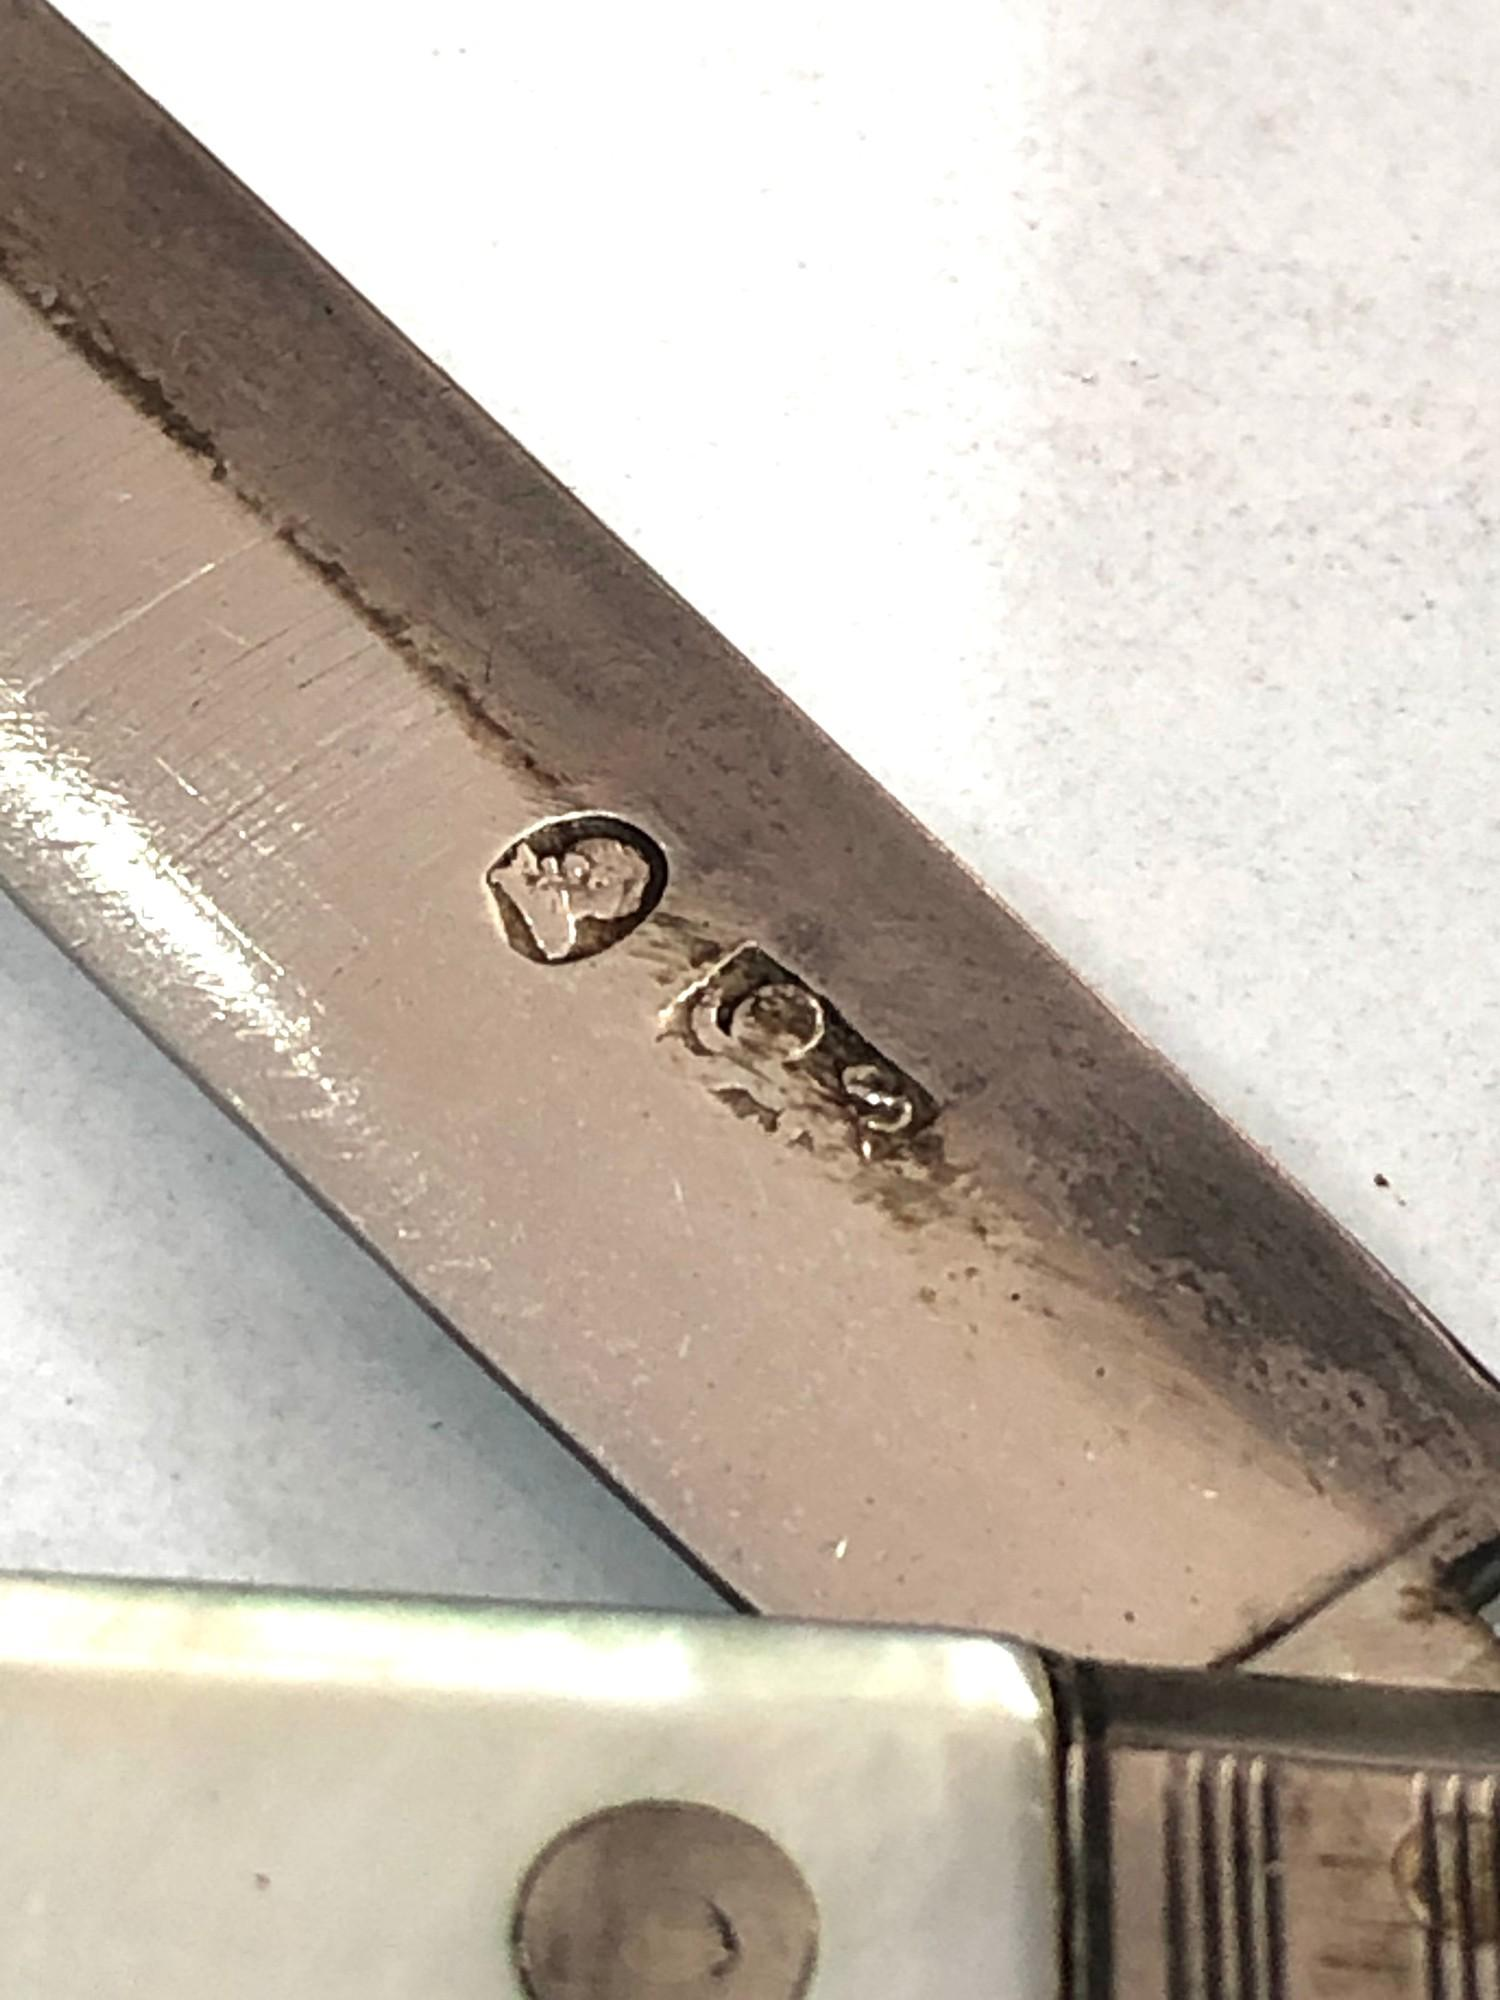 Antique boxed Georgian silver fruit knife m.o.p handle in good condition in original box as shown - Image 2 of 4